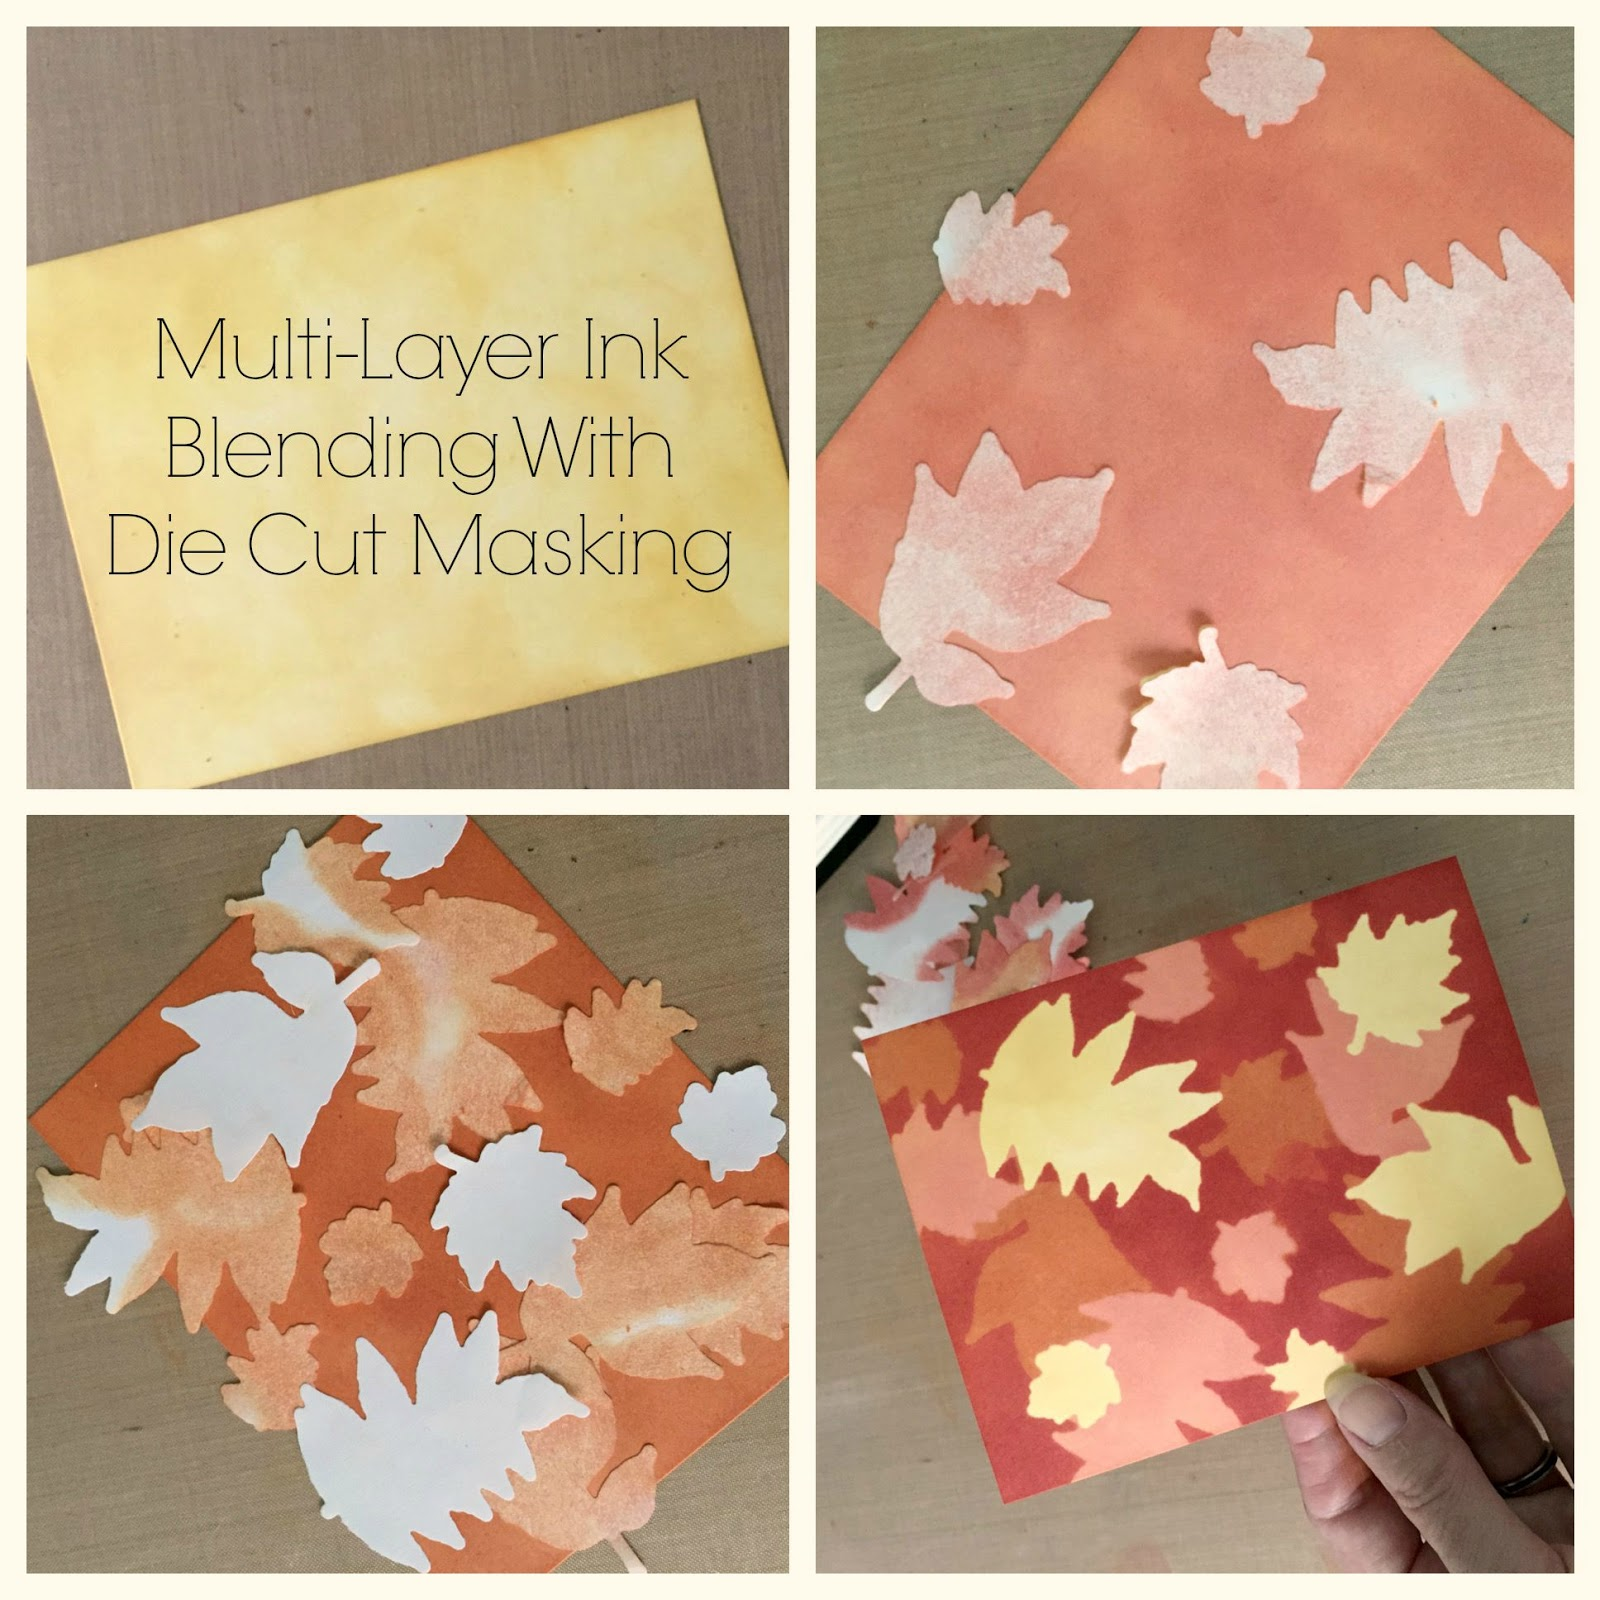 K and R Designs: Multi-Layer Ink Blending With Die Cut Masking